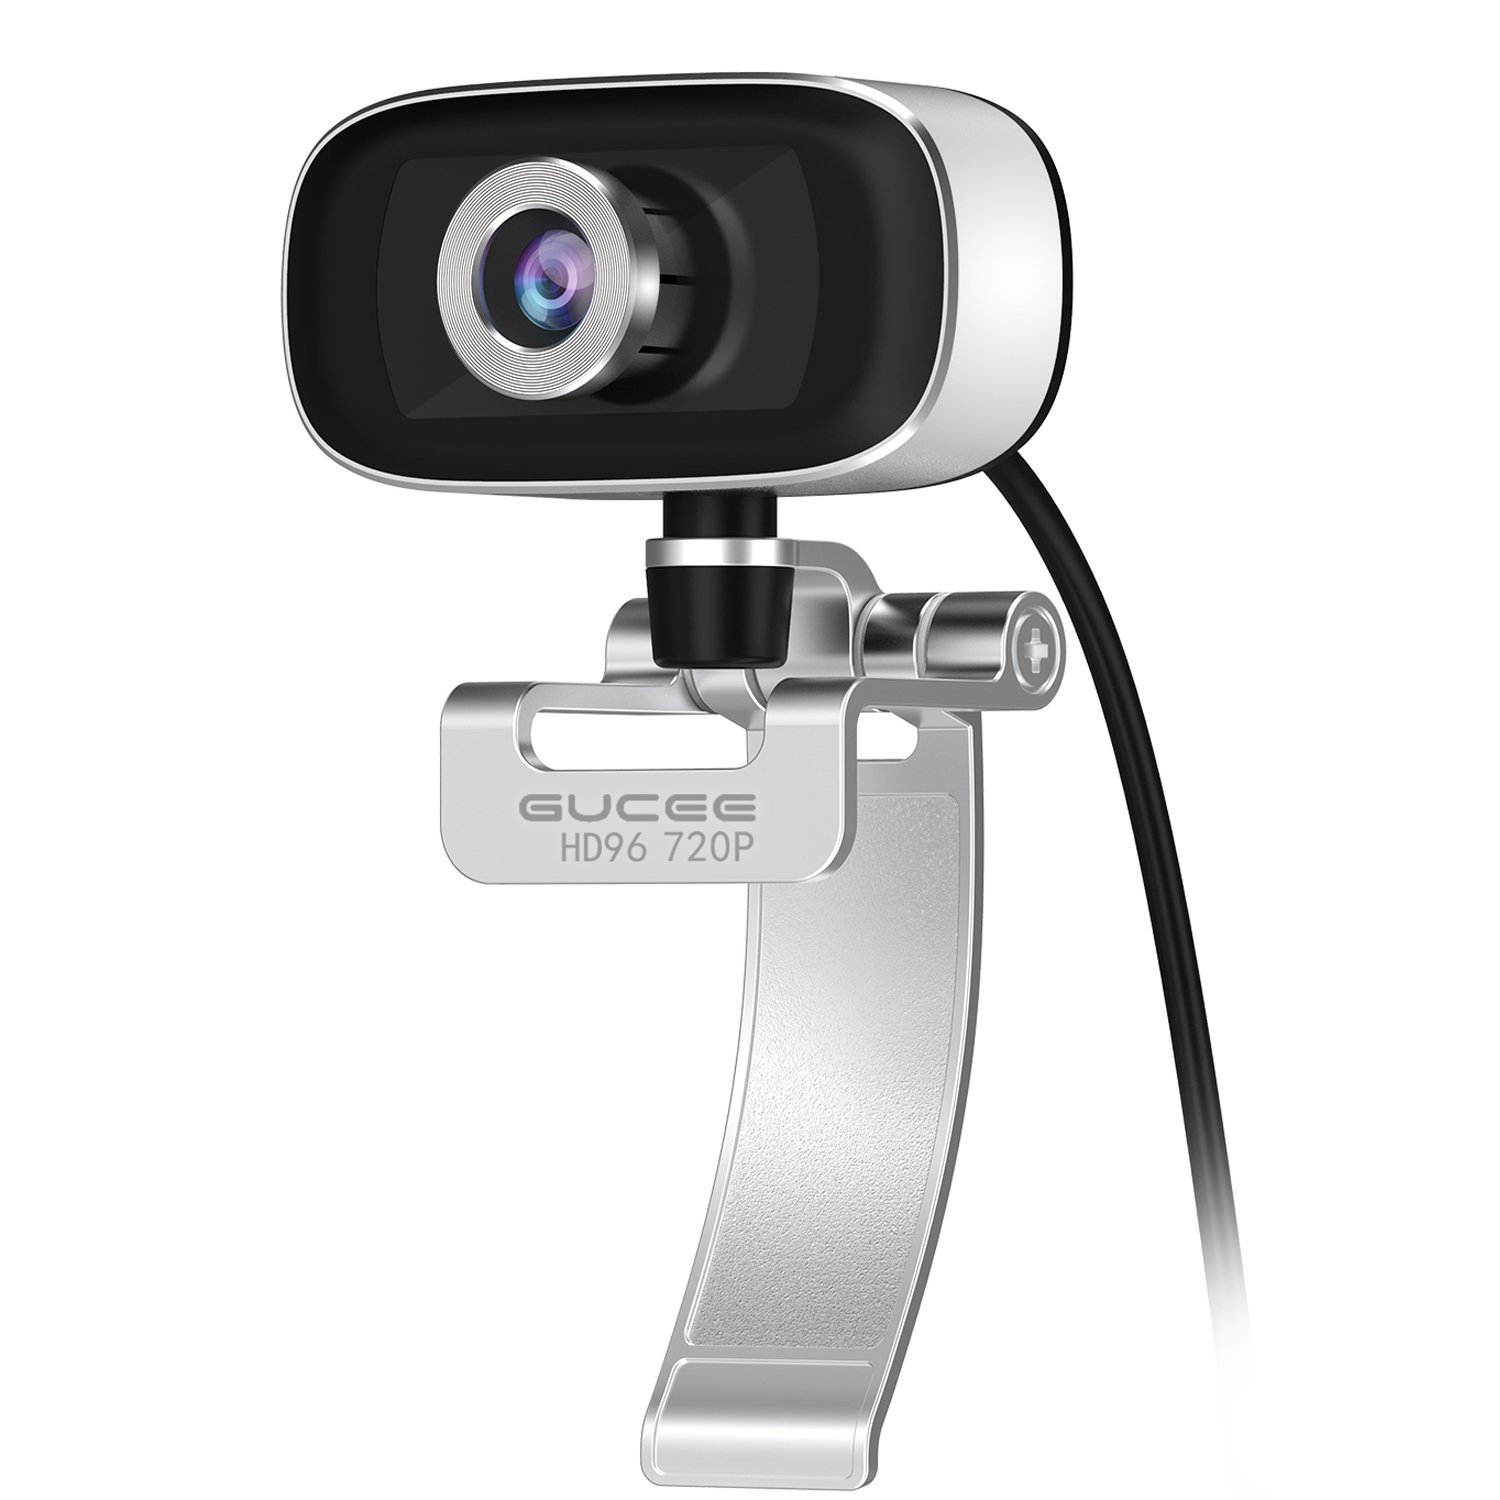 GUCEE HD96 720P HD Webcam with Tripod Ready Base (Tripod Not Included), Web Camera HD Microphone Wide Angle USB Plug and Play, Widescreen Calling Recording for Skype, Win 7 / 8 / 10, Apple Mac OS X